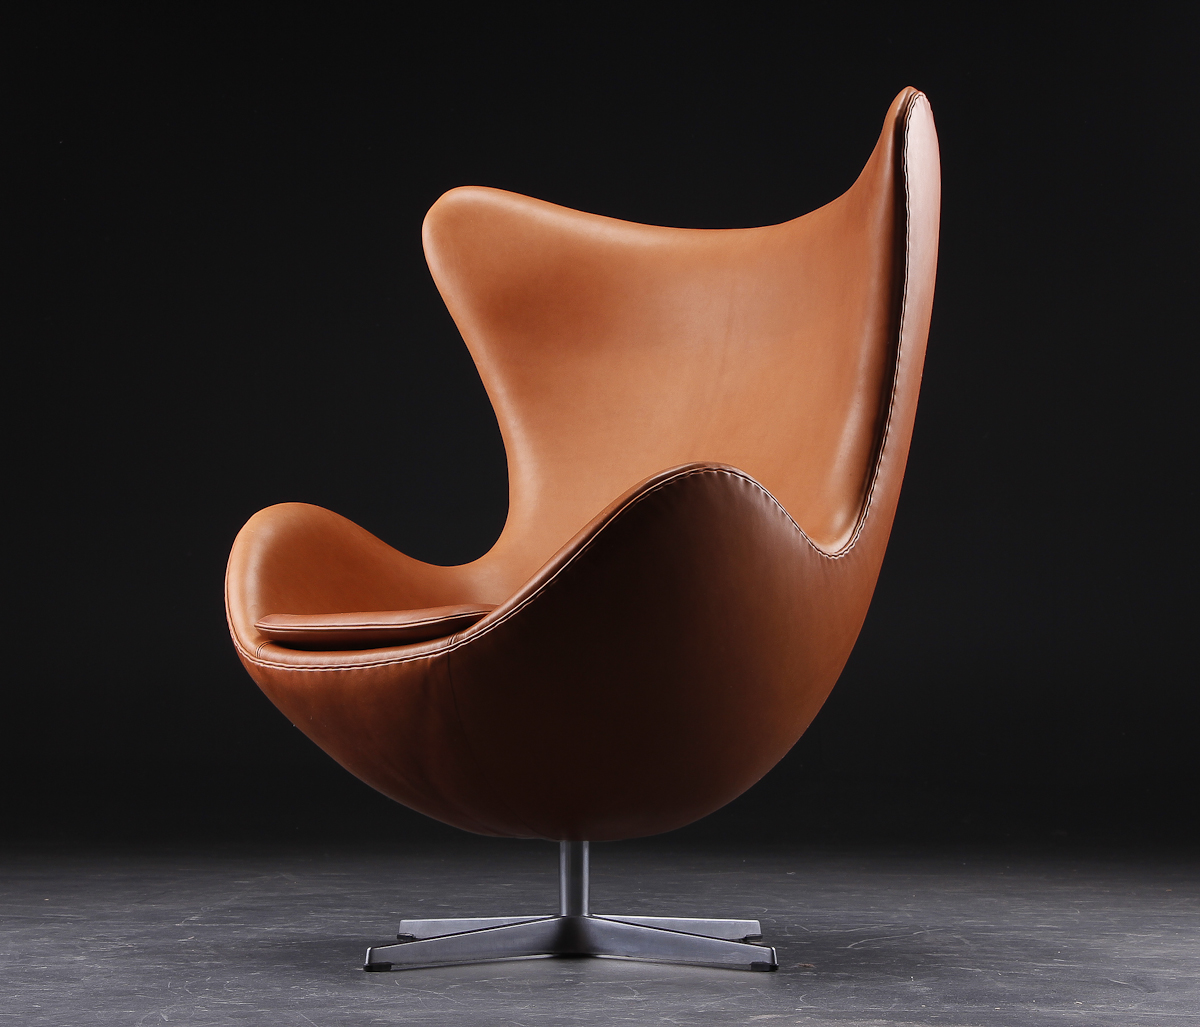 Arne jacobsen egg chair leather - Original Fritz Hansen Scandinavian Modern Leather Lounge Arne Jacobsen Egg Chairmodern Interior Design Original Fritz Hansen Scandinavian Modern